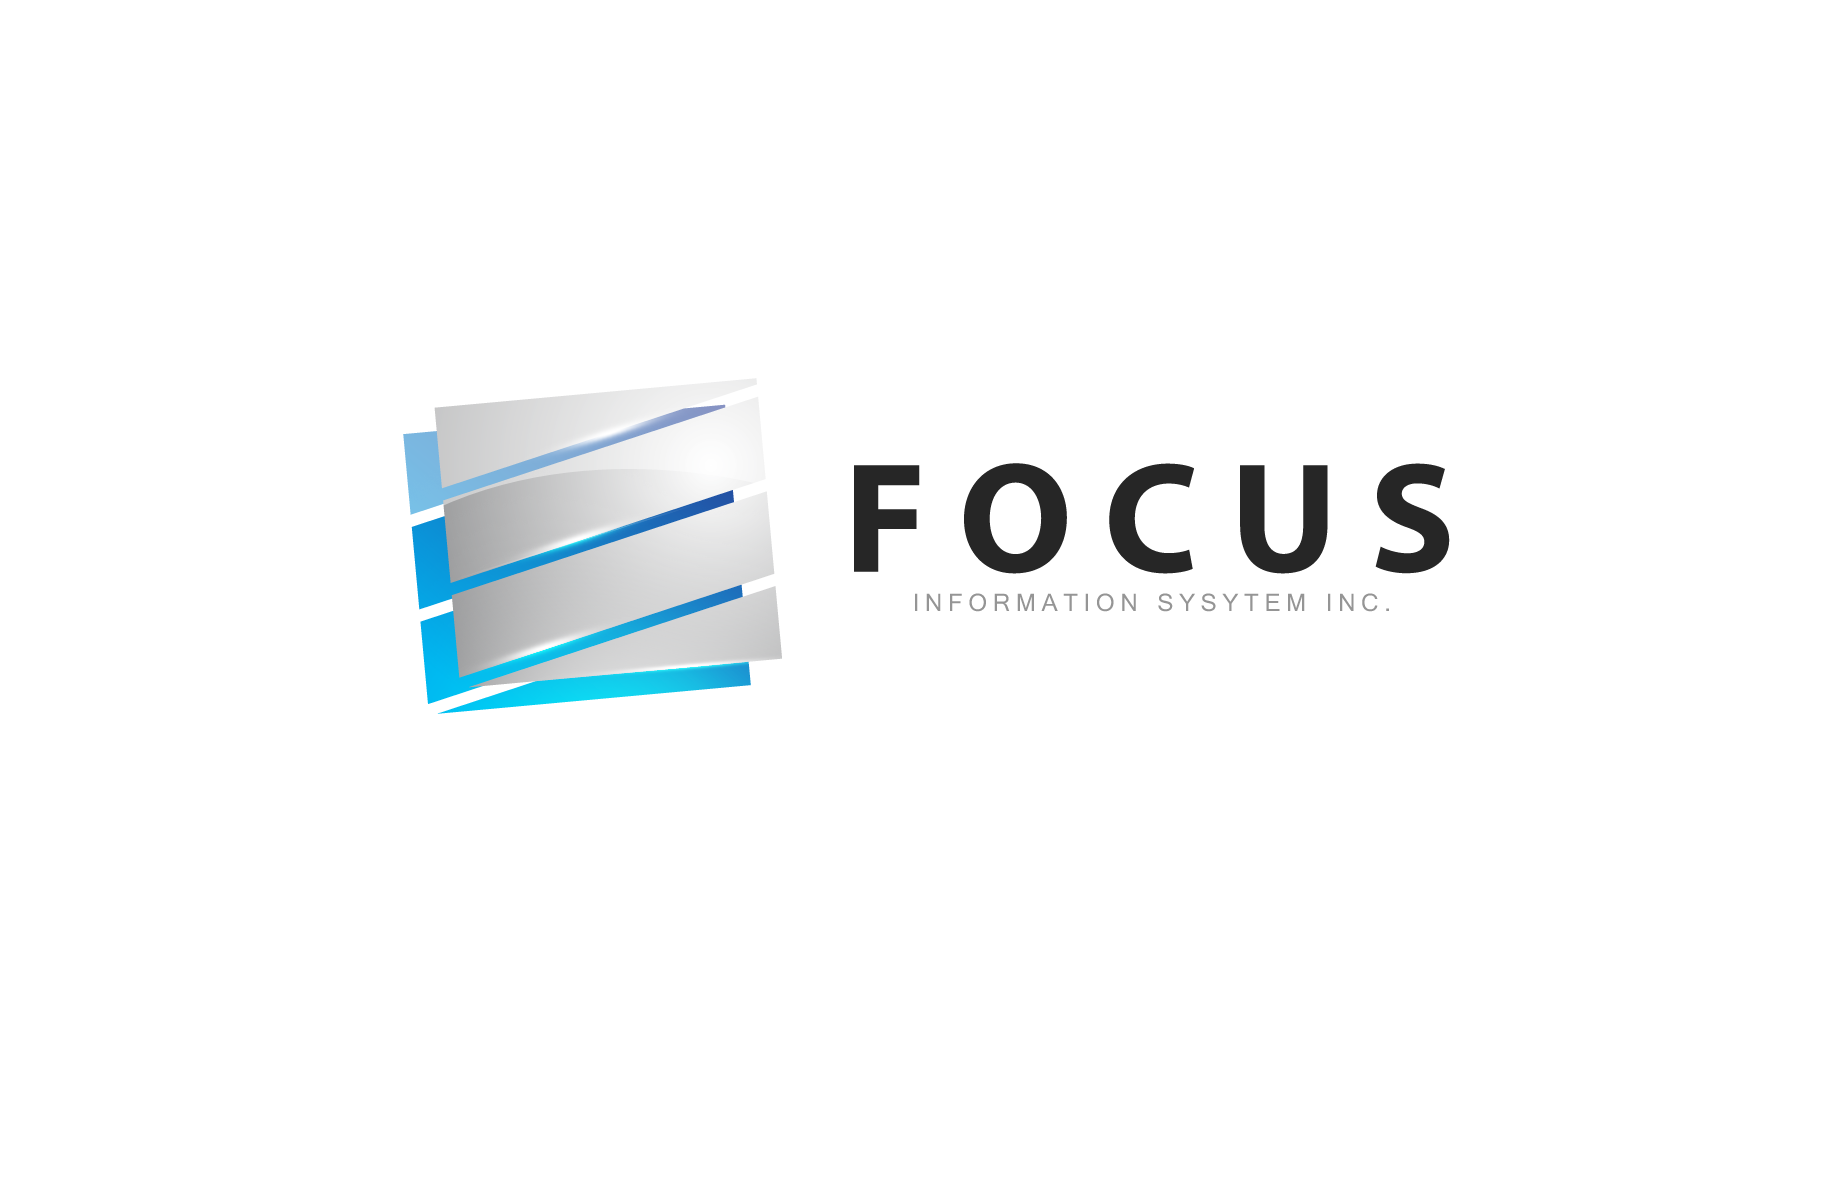 Logo Design by Jan Chua - Entry No. 49 in the Logo Design Contest Artistic Logo Design for Focus Information Systems, Inc..